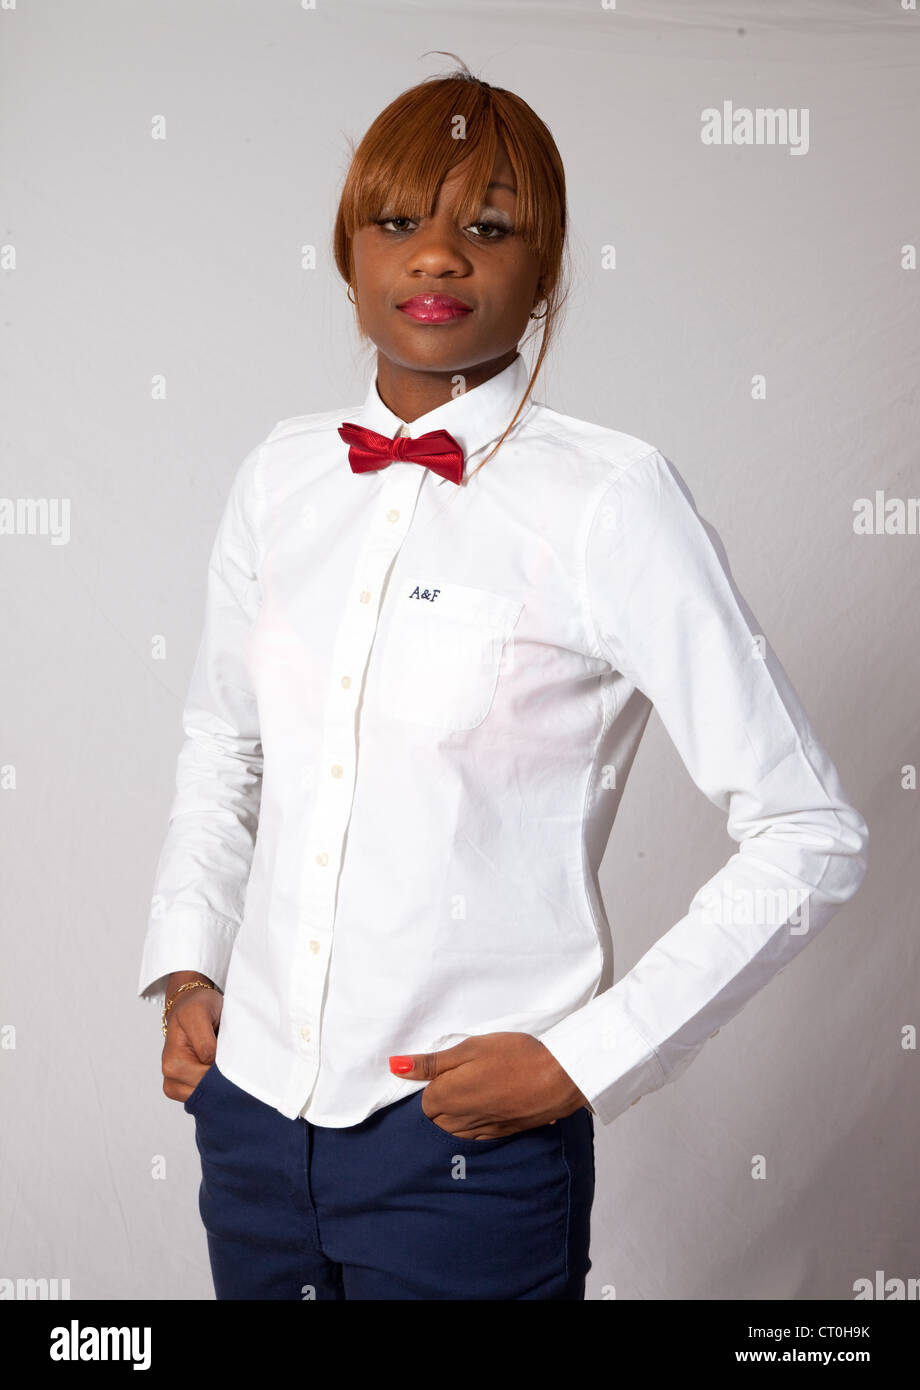 Lovely Black Woman In White Shirt Red Bow Tie And Blue Pants Stock